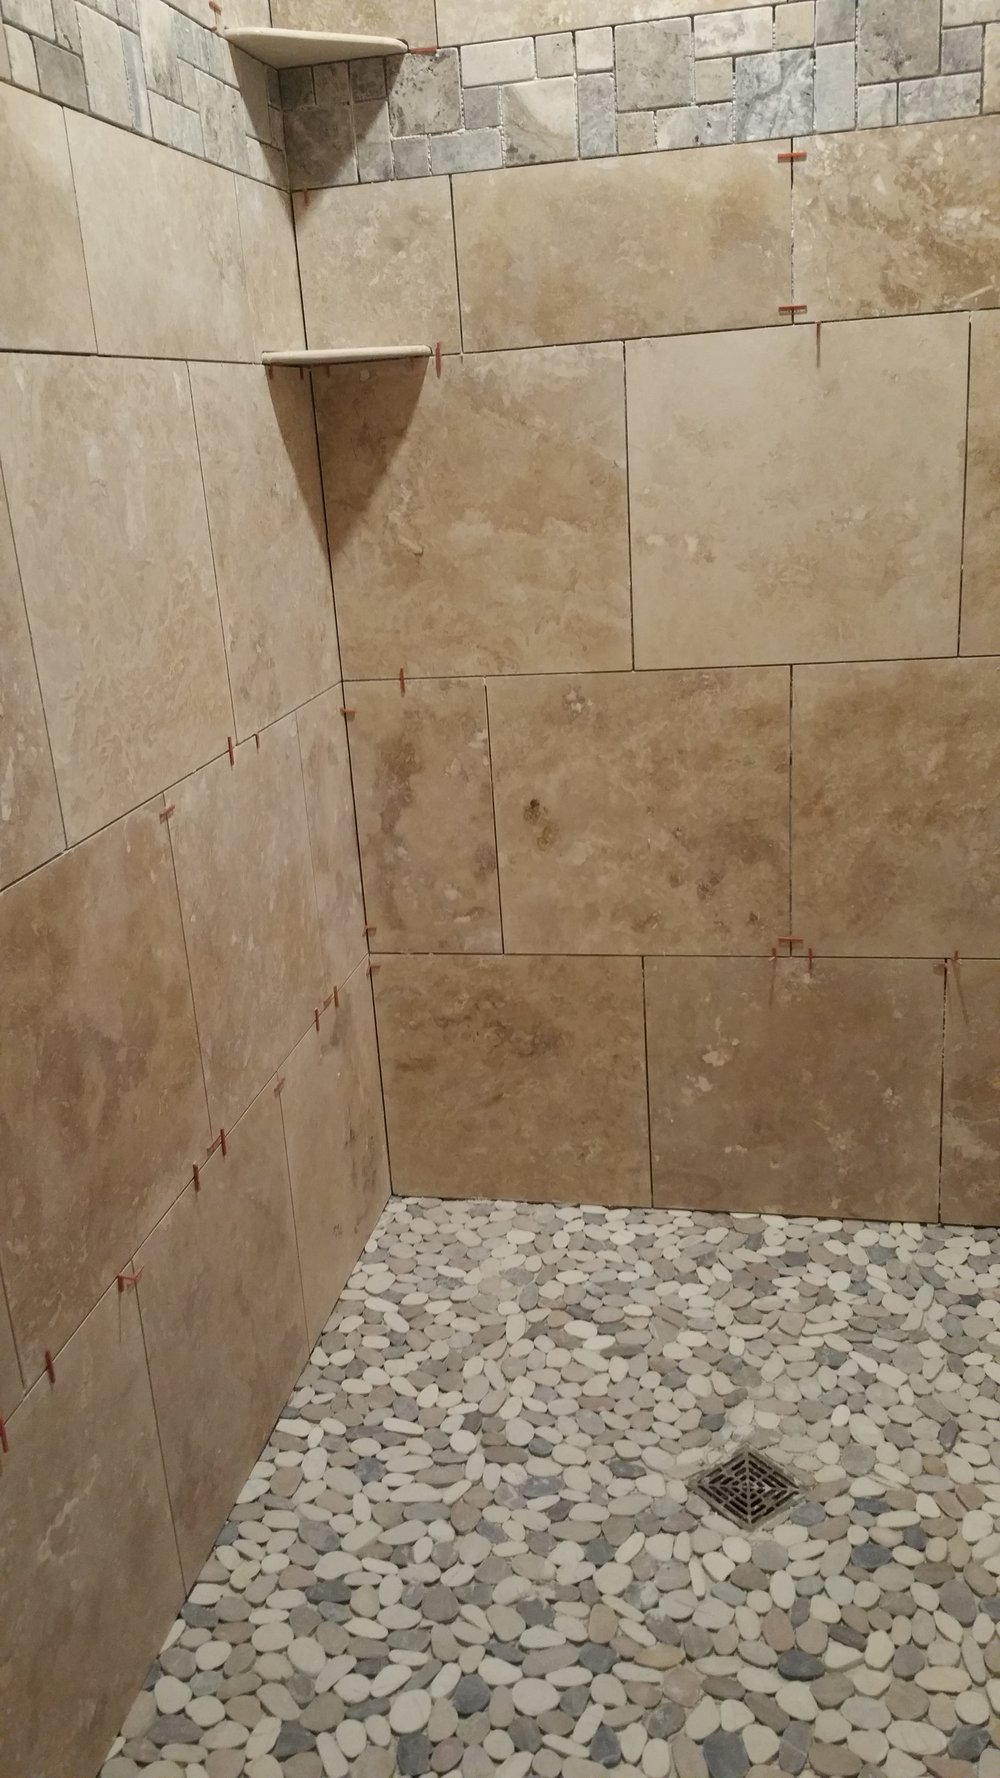 Tarvertine Shower with Schluter Ditra for waterproofing, sealed tile twice after finishing